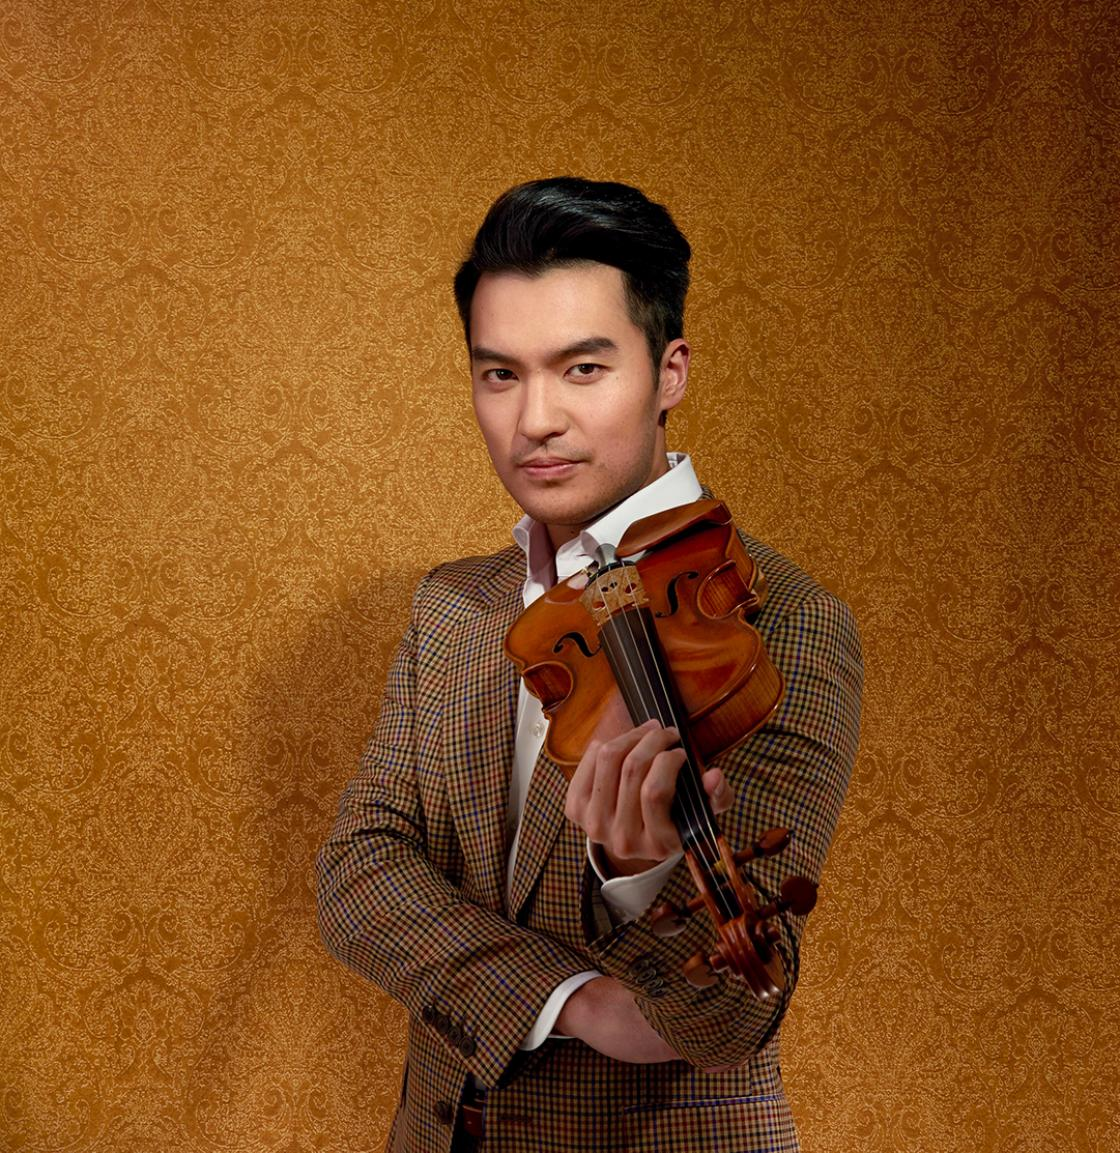 Photograph of violinist Ray Chen, June 2018. Photograph by John Mac.